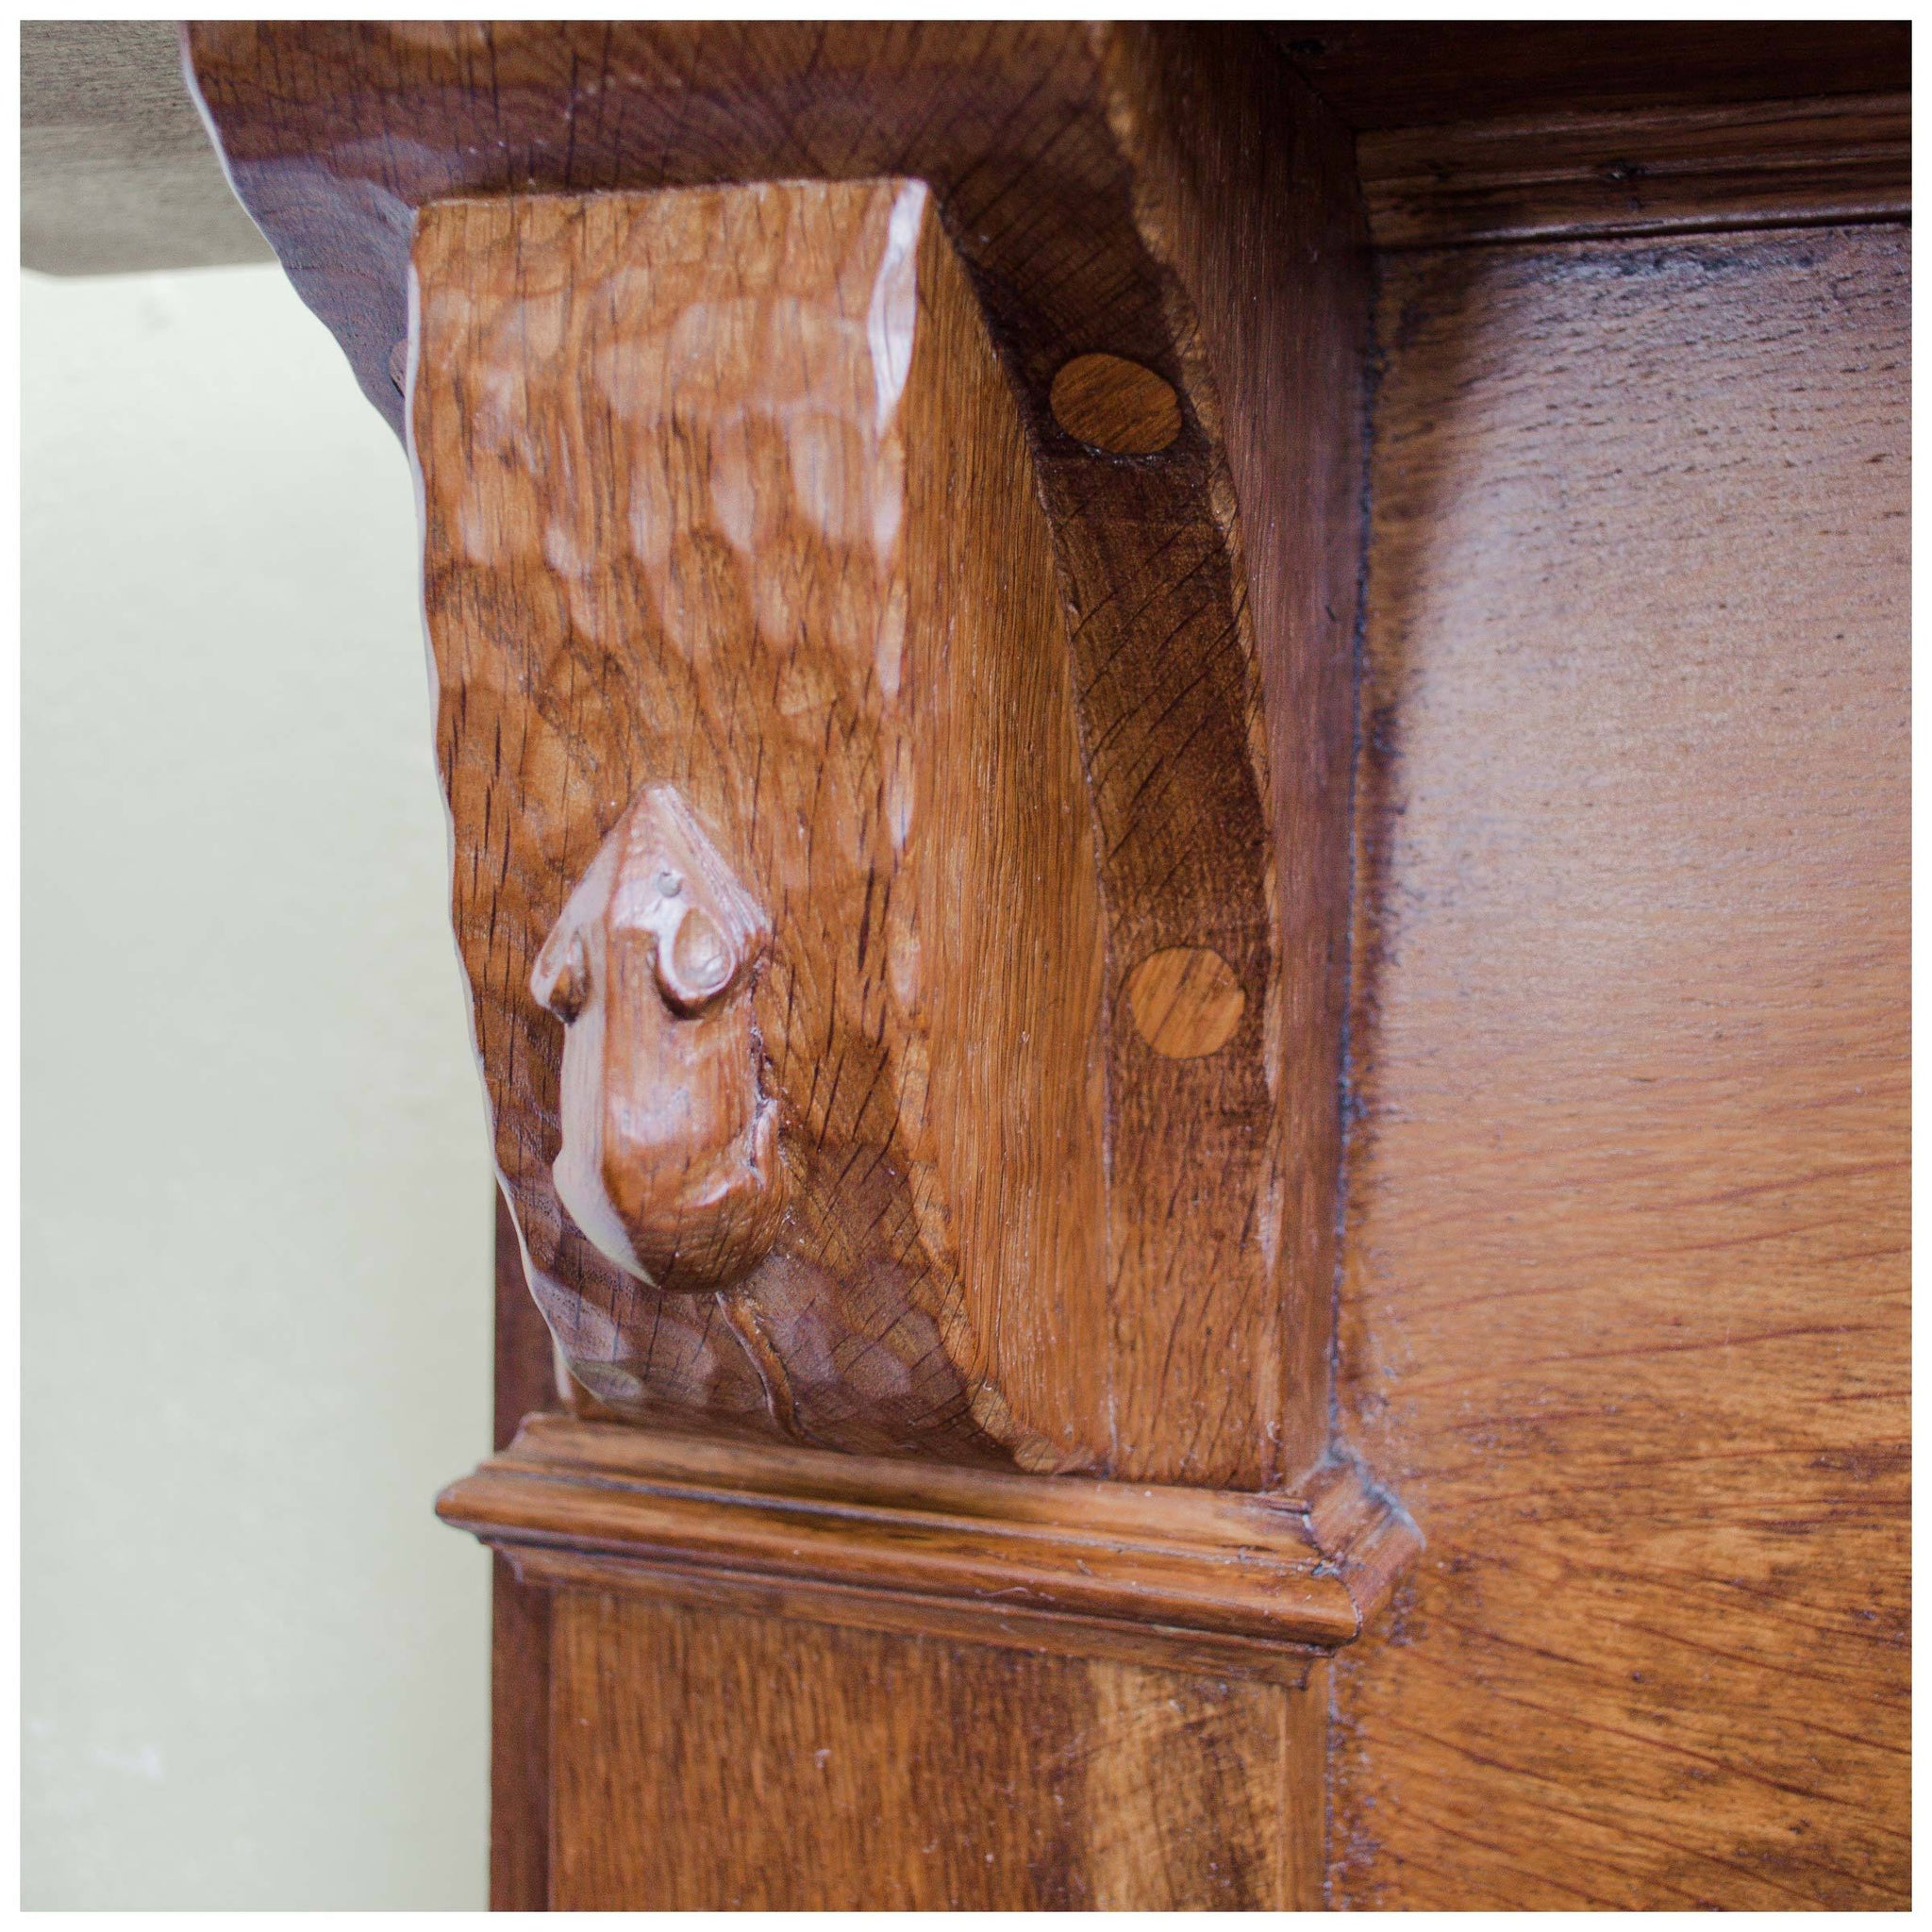 Carved wooden oak mouse furniture,fire surrounds ideal for oak tables,chairs